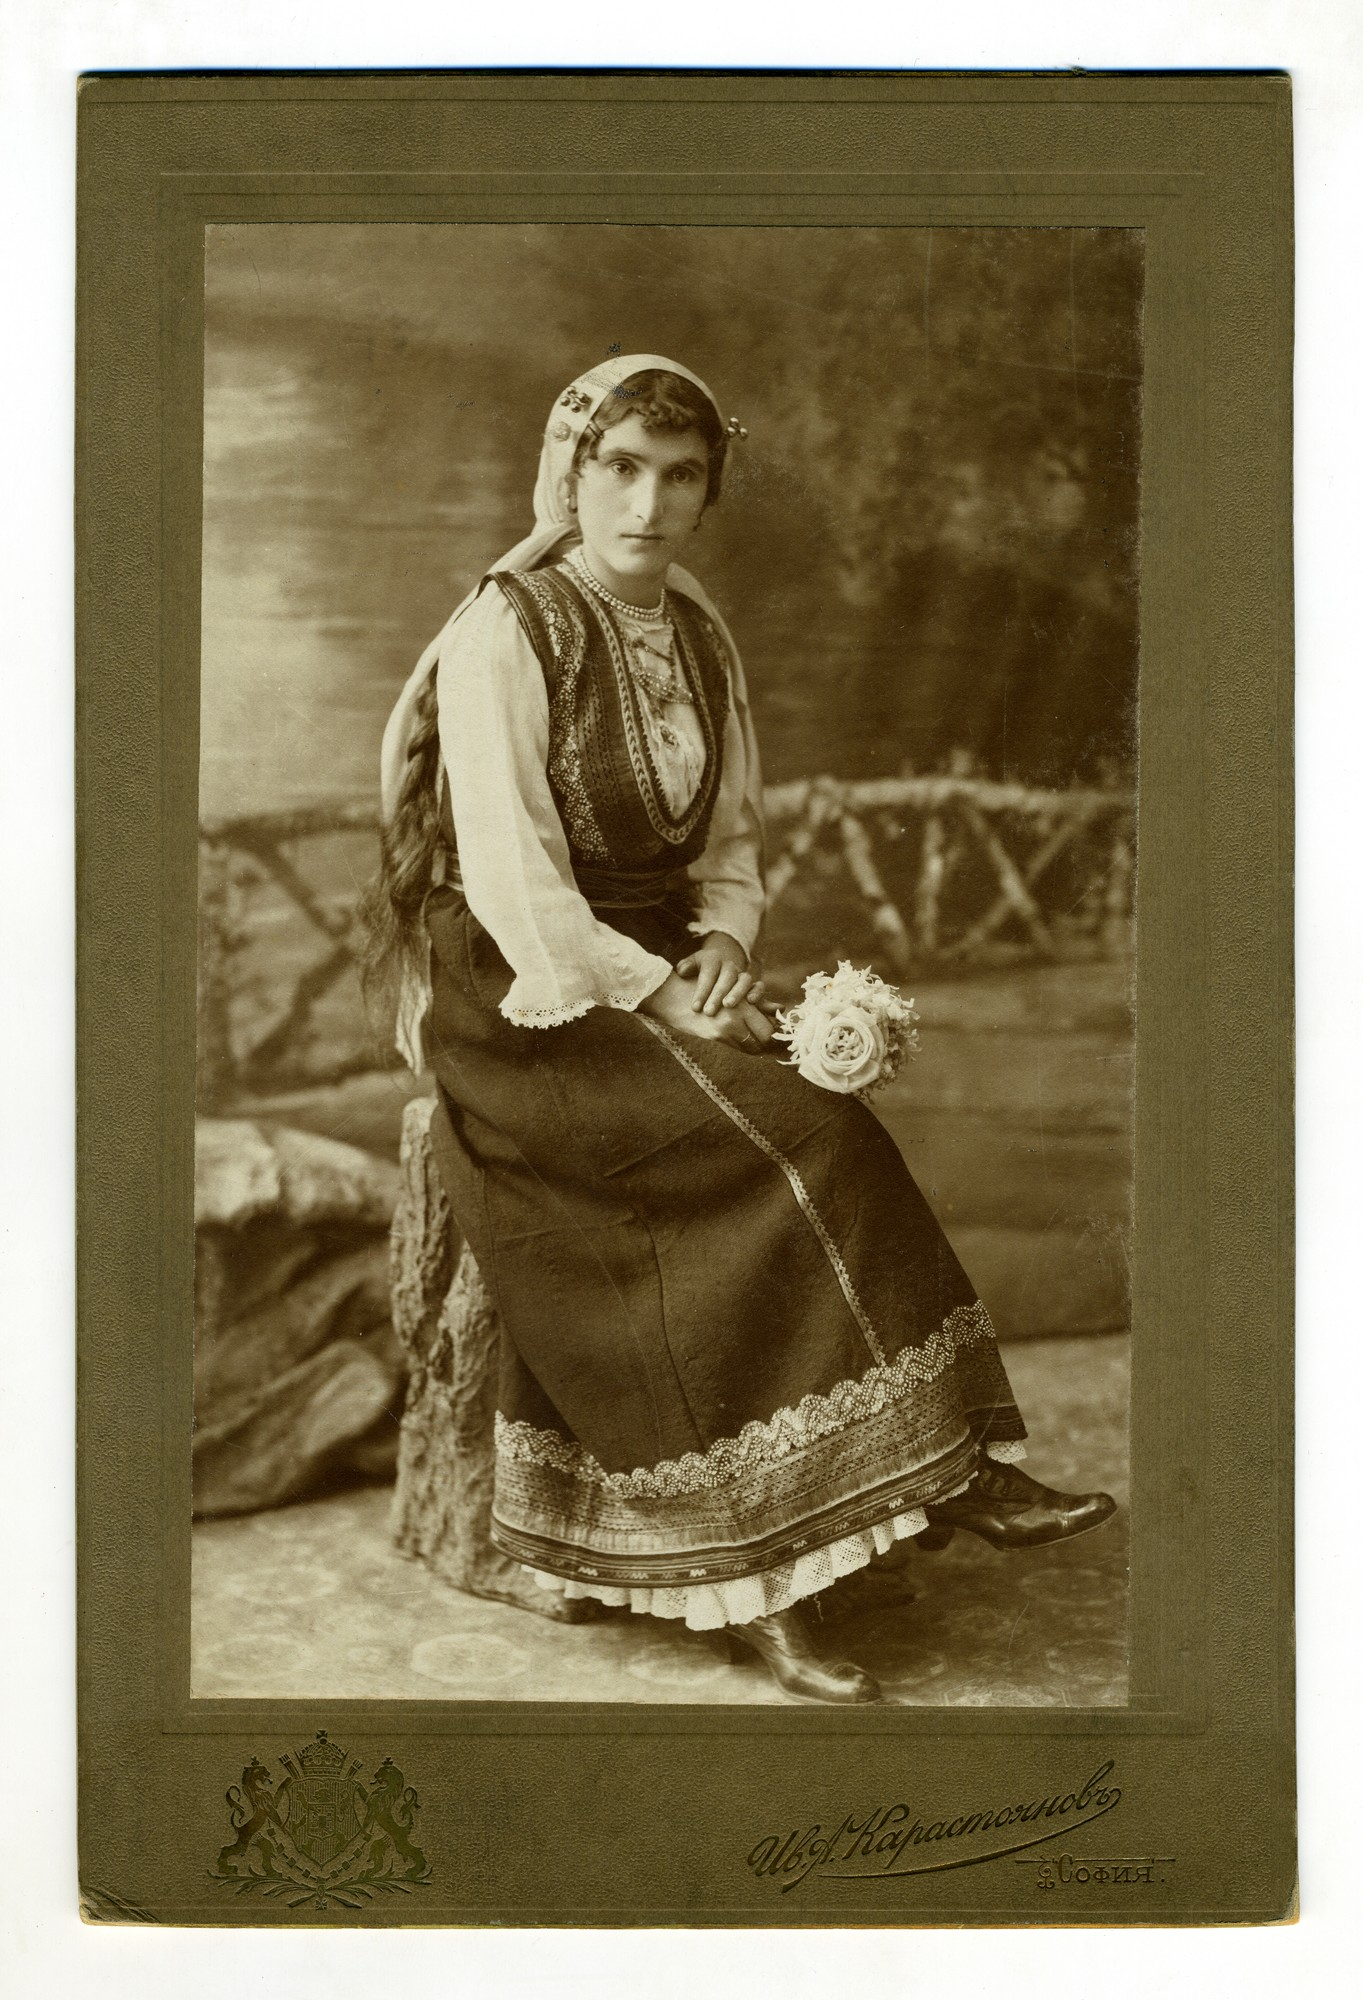 Studio portrait of a woman in folk costume, © Institute for Ethnology and Folklore Studies with Ethnographic Museum - AEIM, BAS